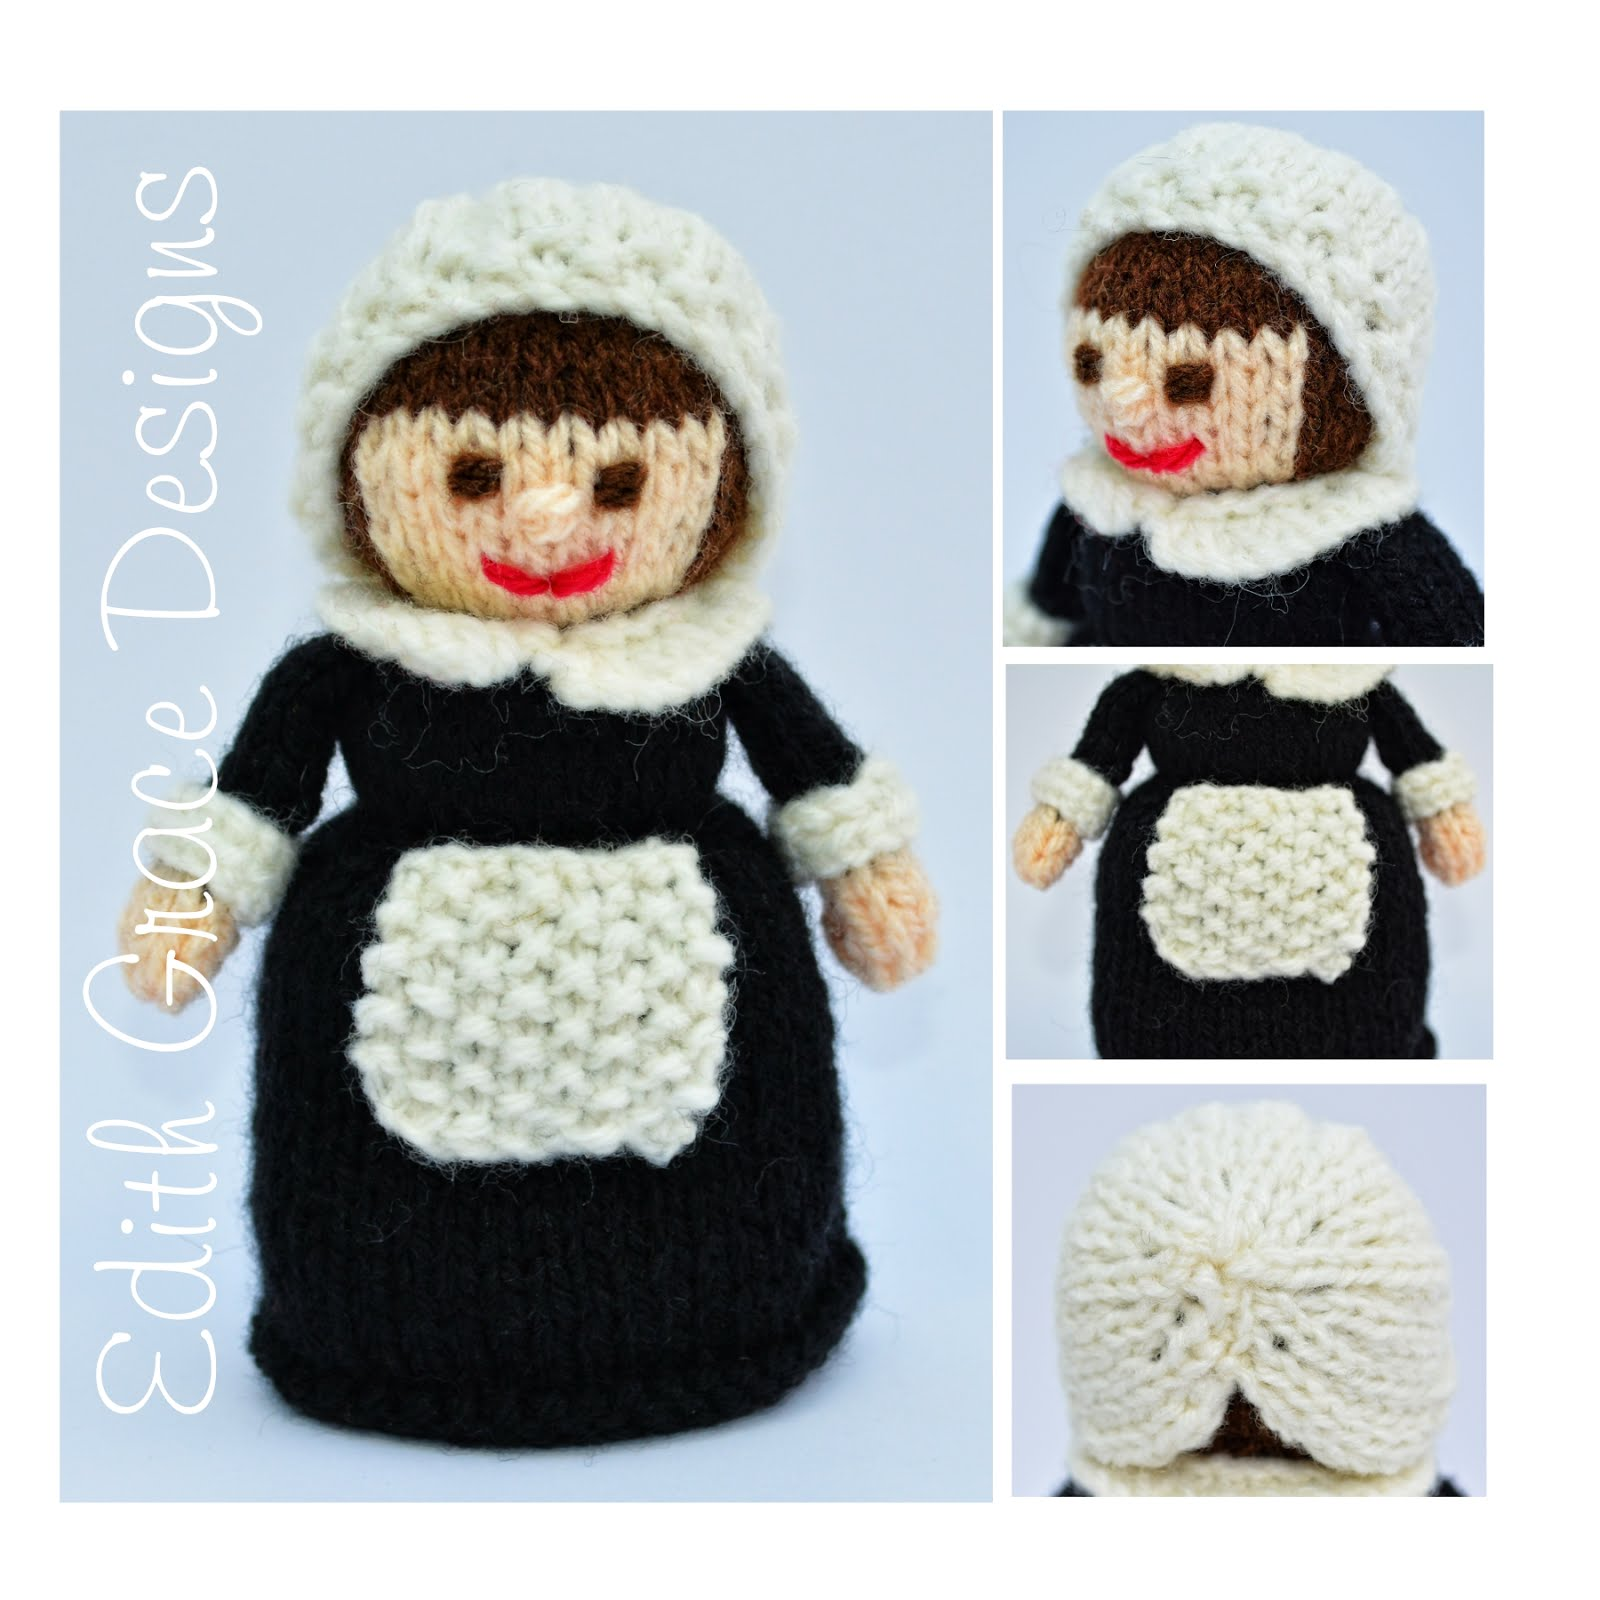 Edith Grace Designs: Violet 1921 - A Lady\'s Maid Doll Knitting Pattern